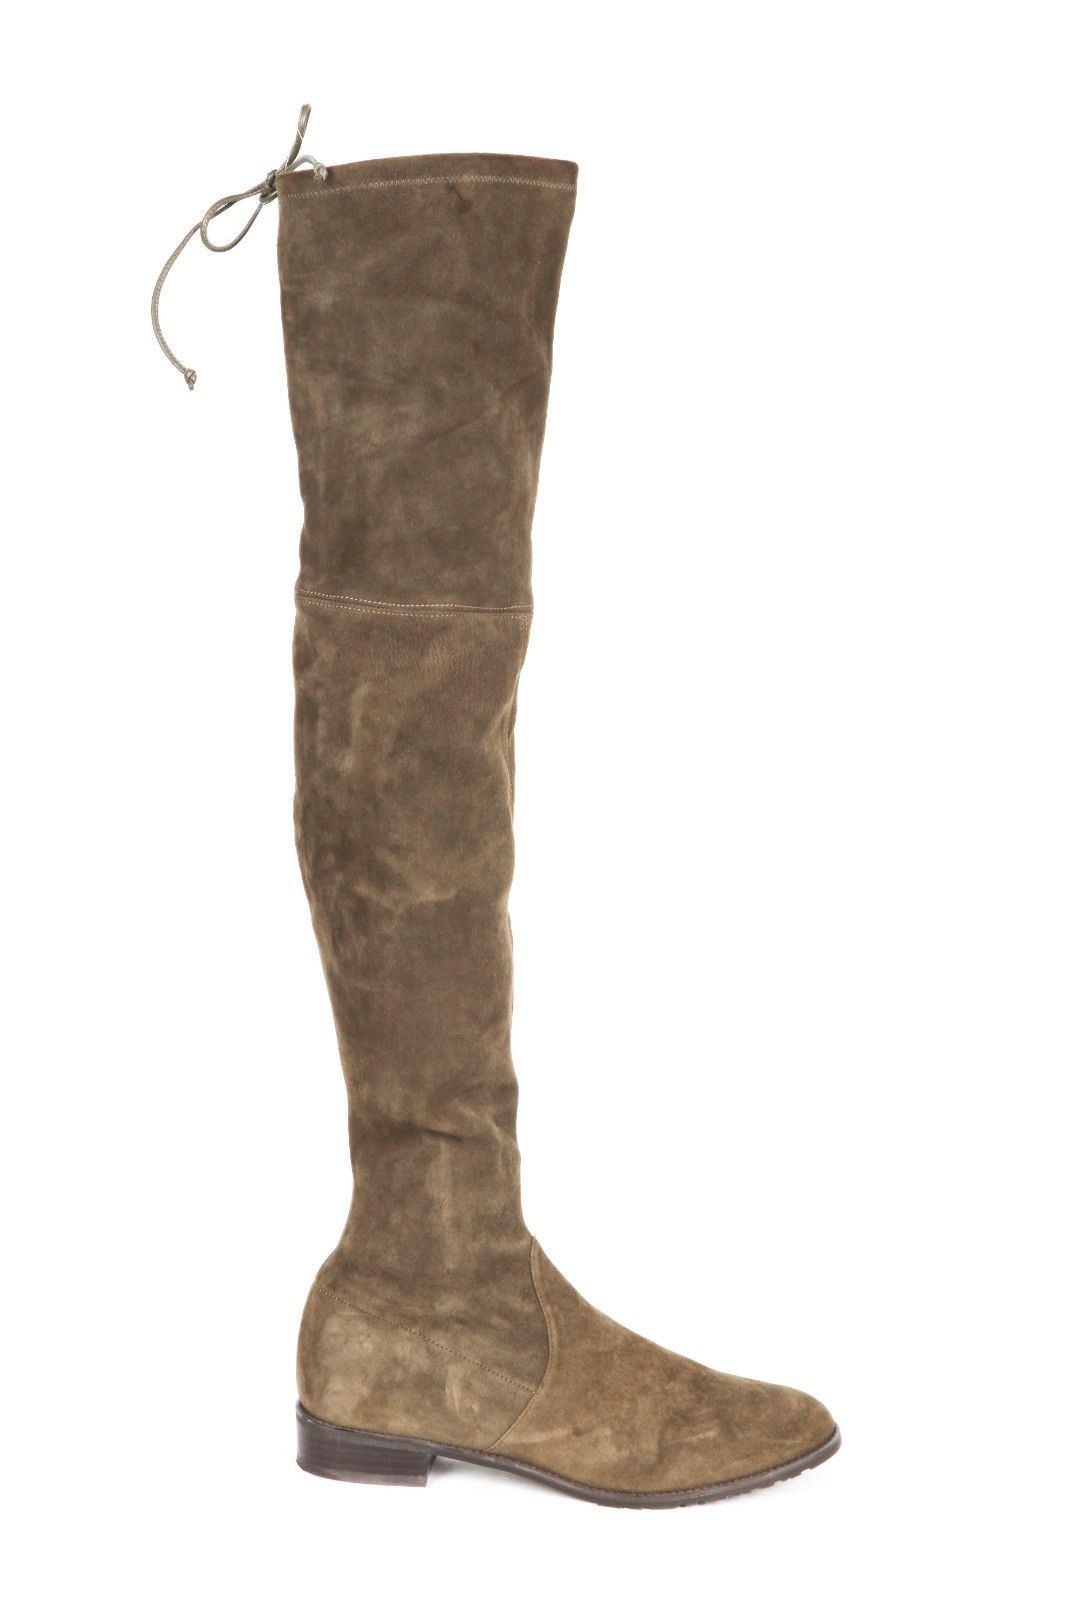 STUART WEITZMAN Olive Green Lowland Suede Over The Knee Boots Size 9.5